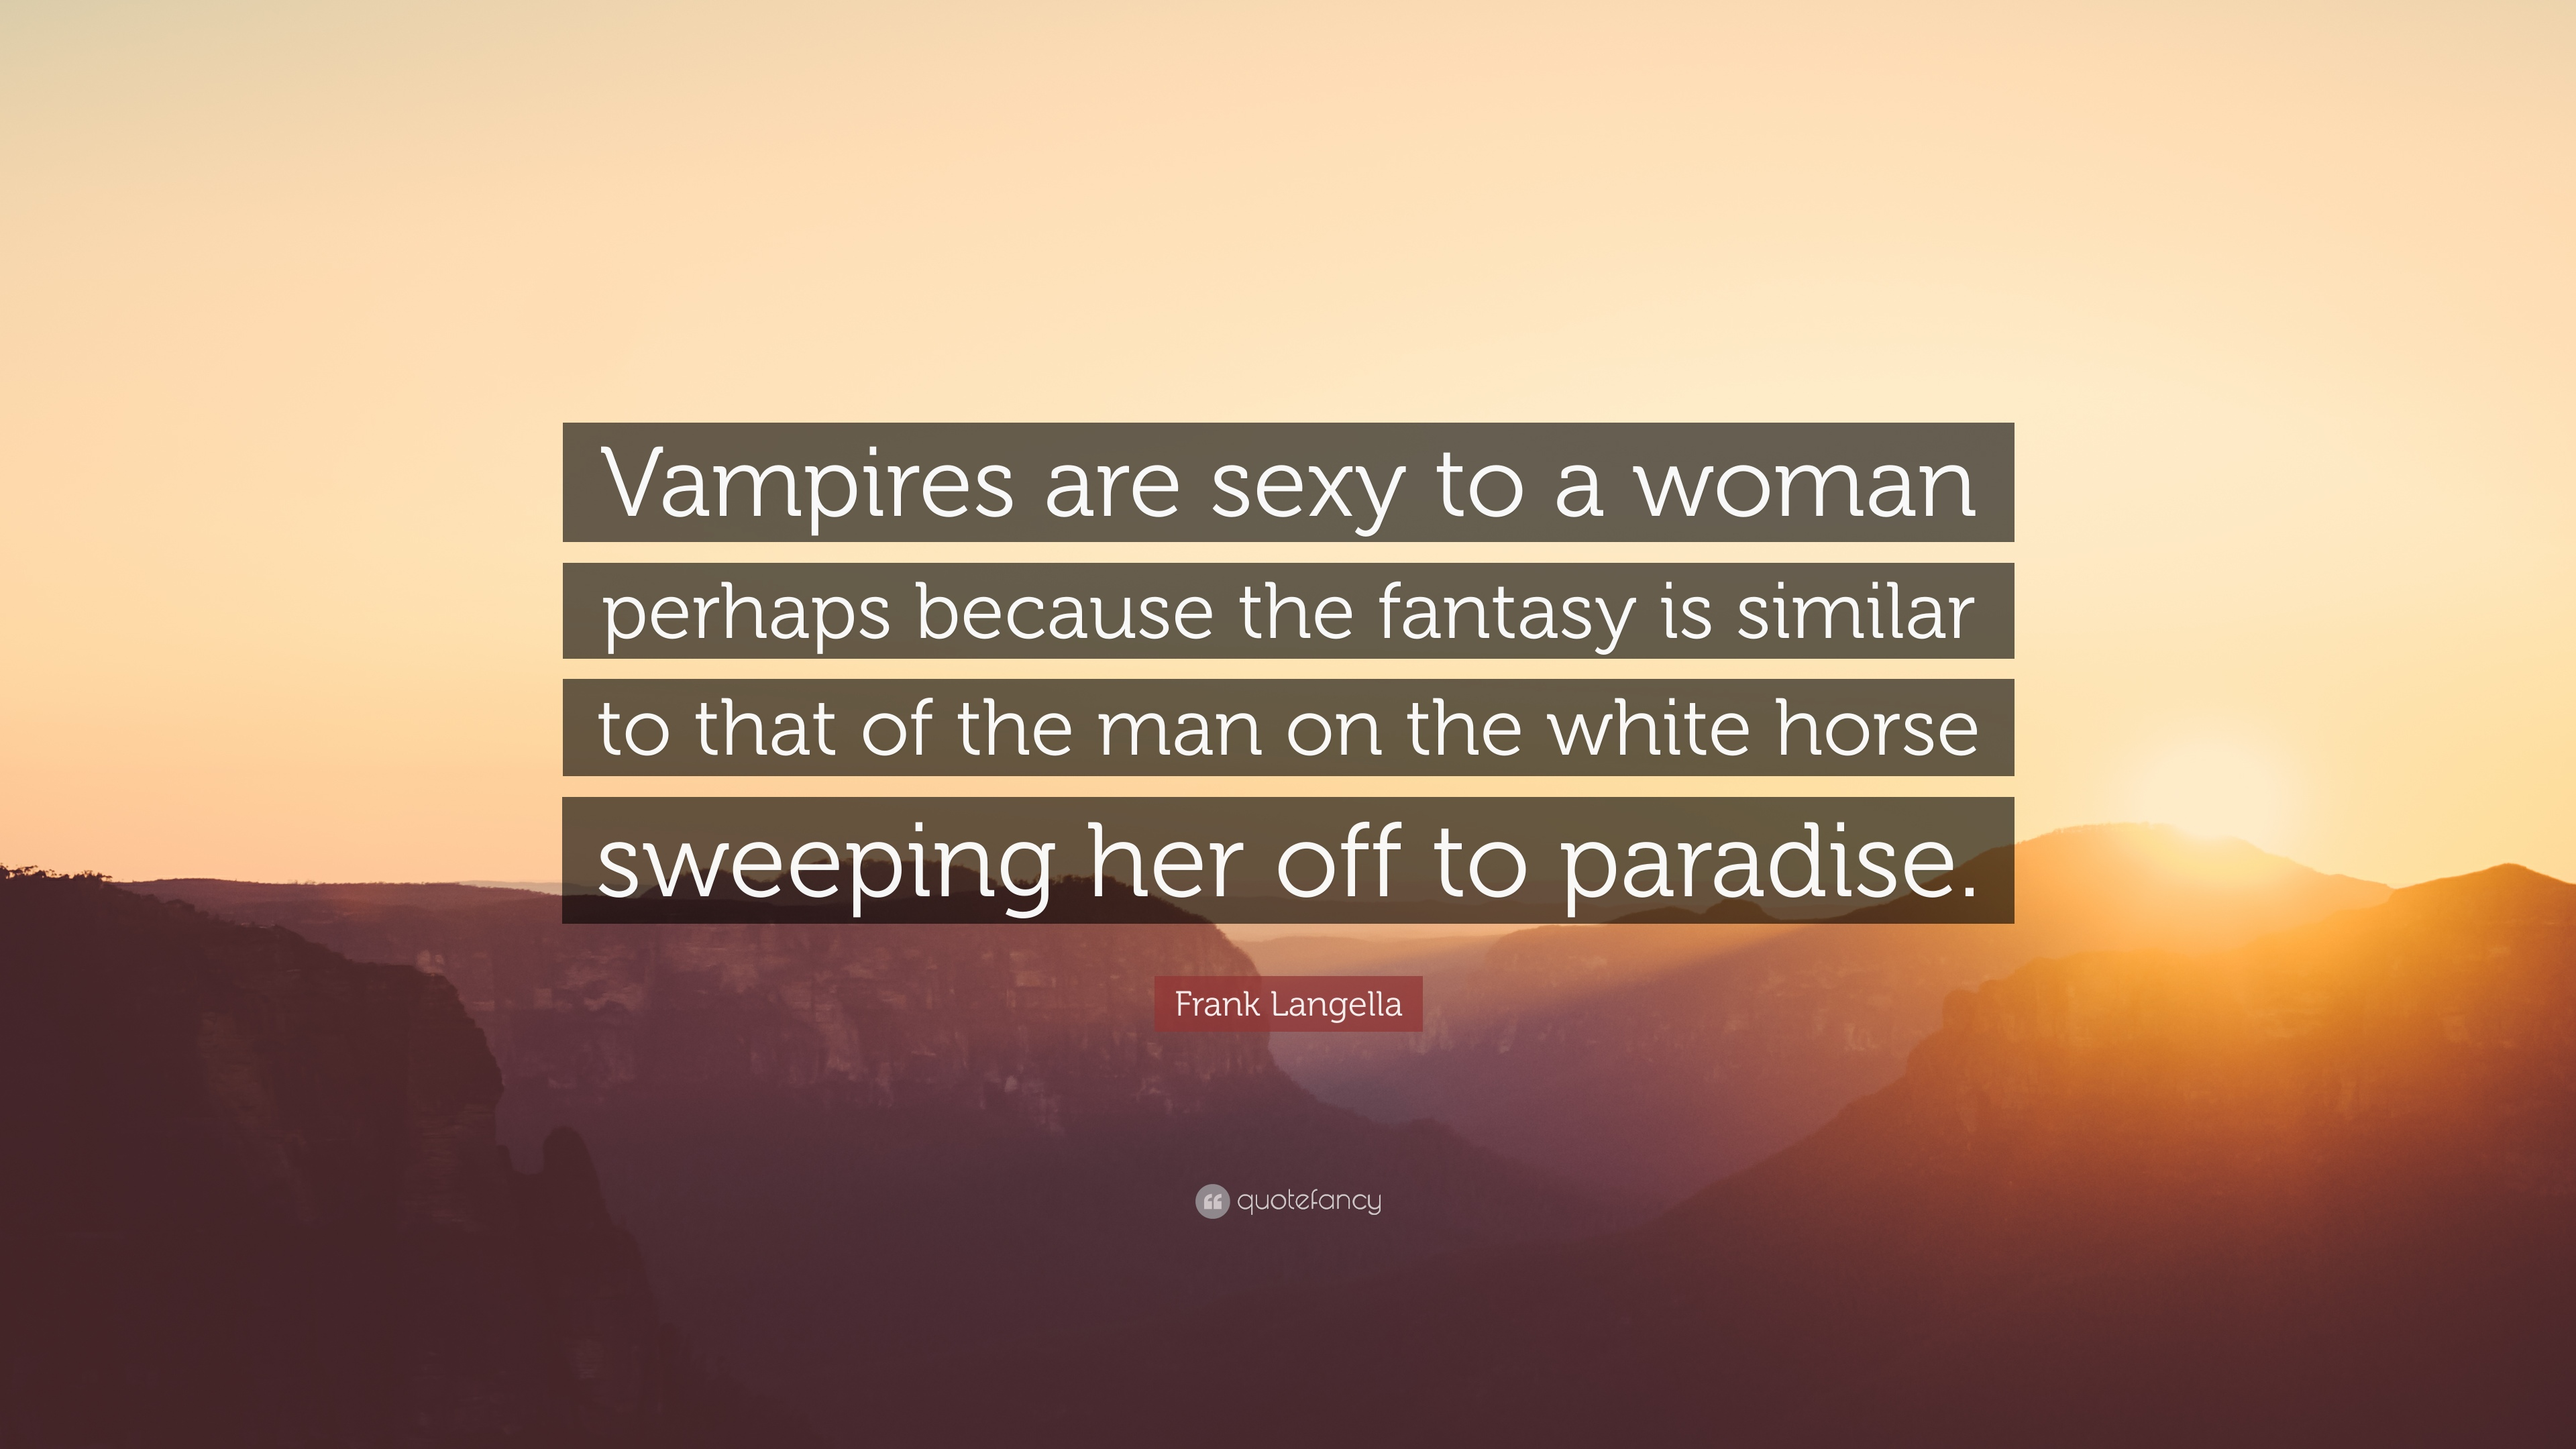 About will sexy to a woman consider